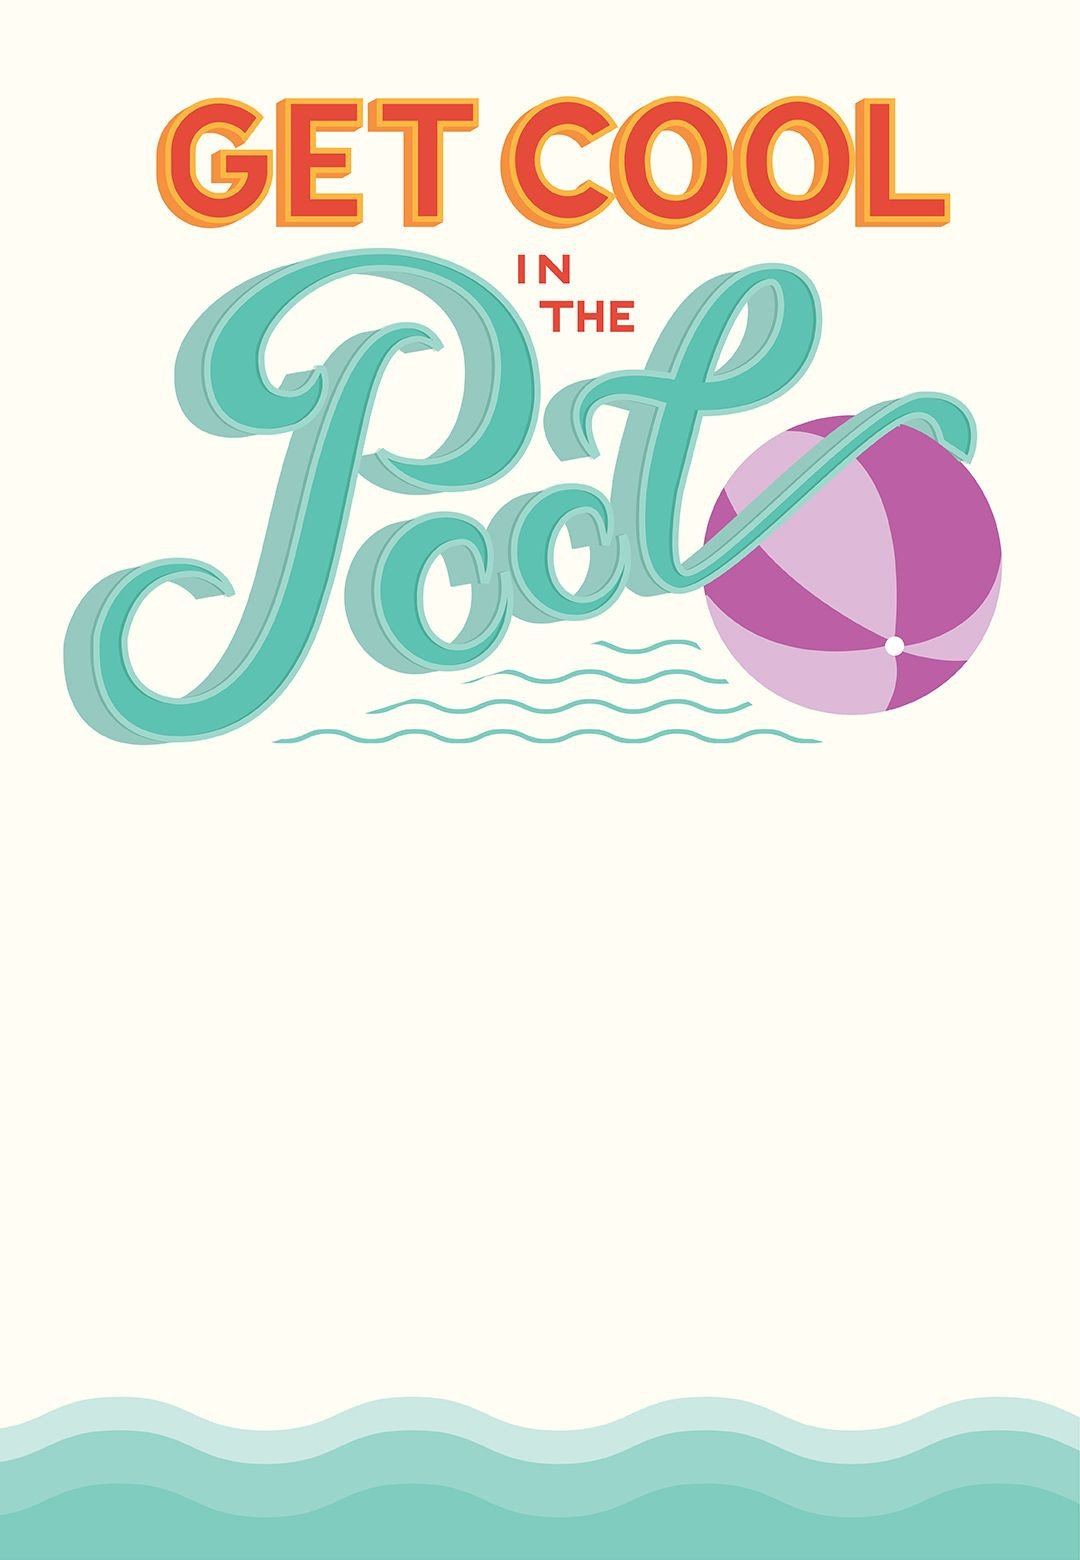 Pool Party Invitation Template Pool Party Free Printable Party Invitation Template